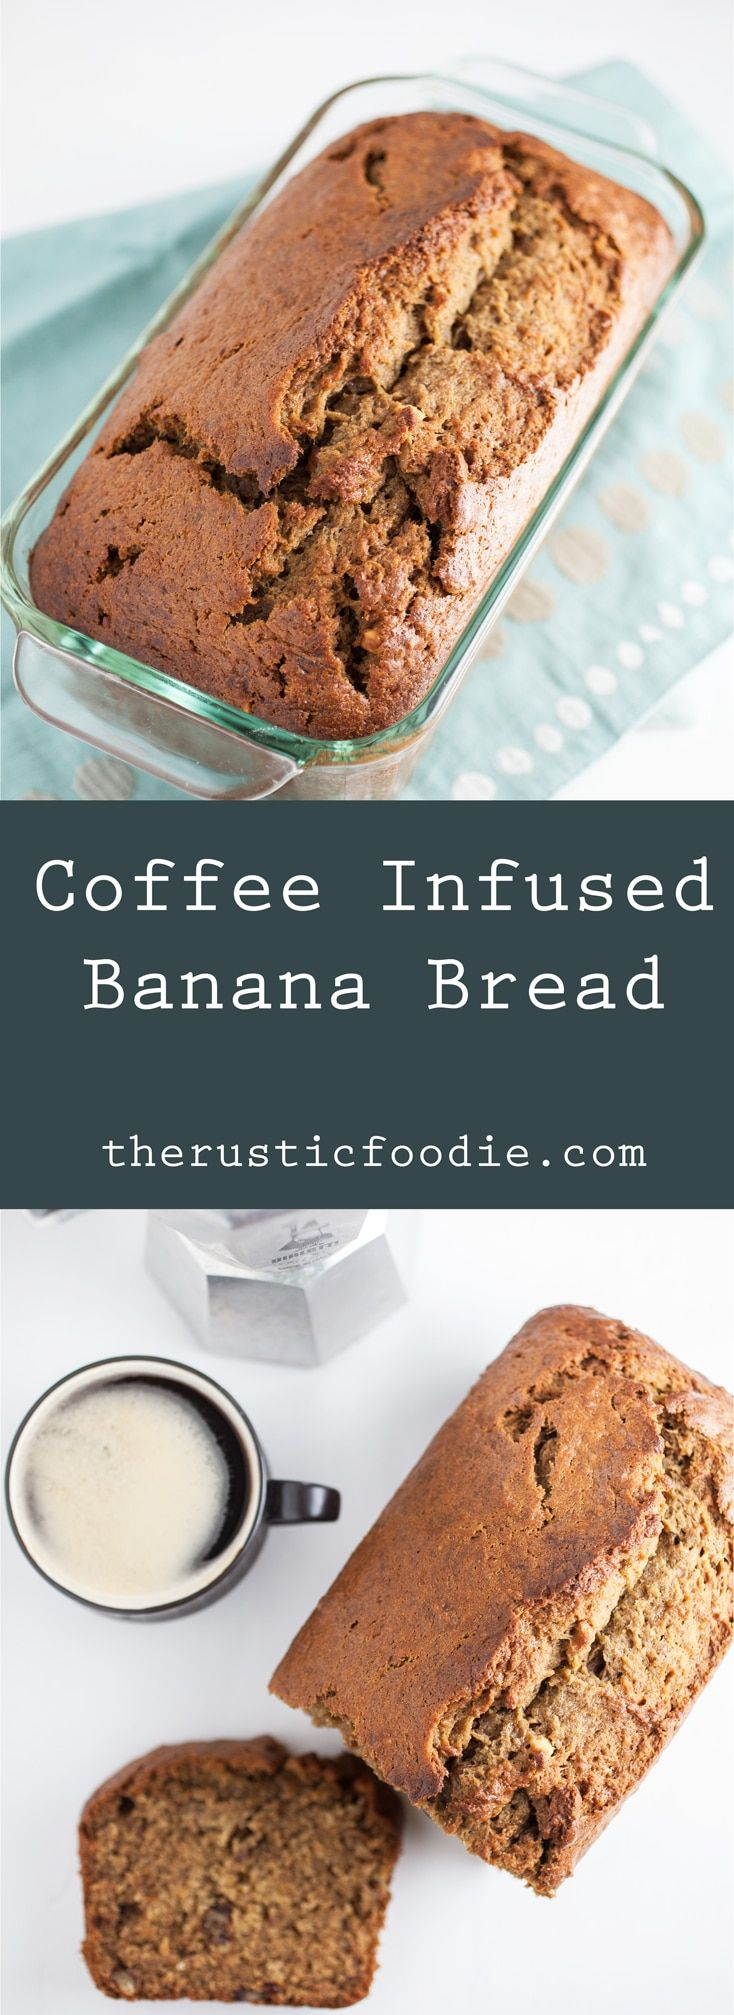 We've all had banana bread but have you tried banana bread with coffee? This Coffee Infused Banana Bread recipe is moist, quick, and easy. The coffee accents the flavor of the banana perfectly. Throw in some cinnamon and walnuts and you've got the perfect treat! It's great for dessert, breakfast, or a snack. Many have said this is their favorite banana bread recipe ever!